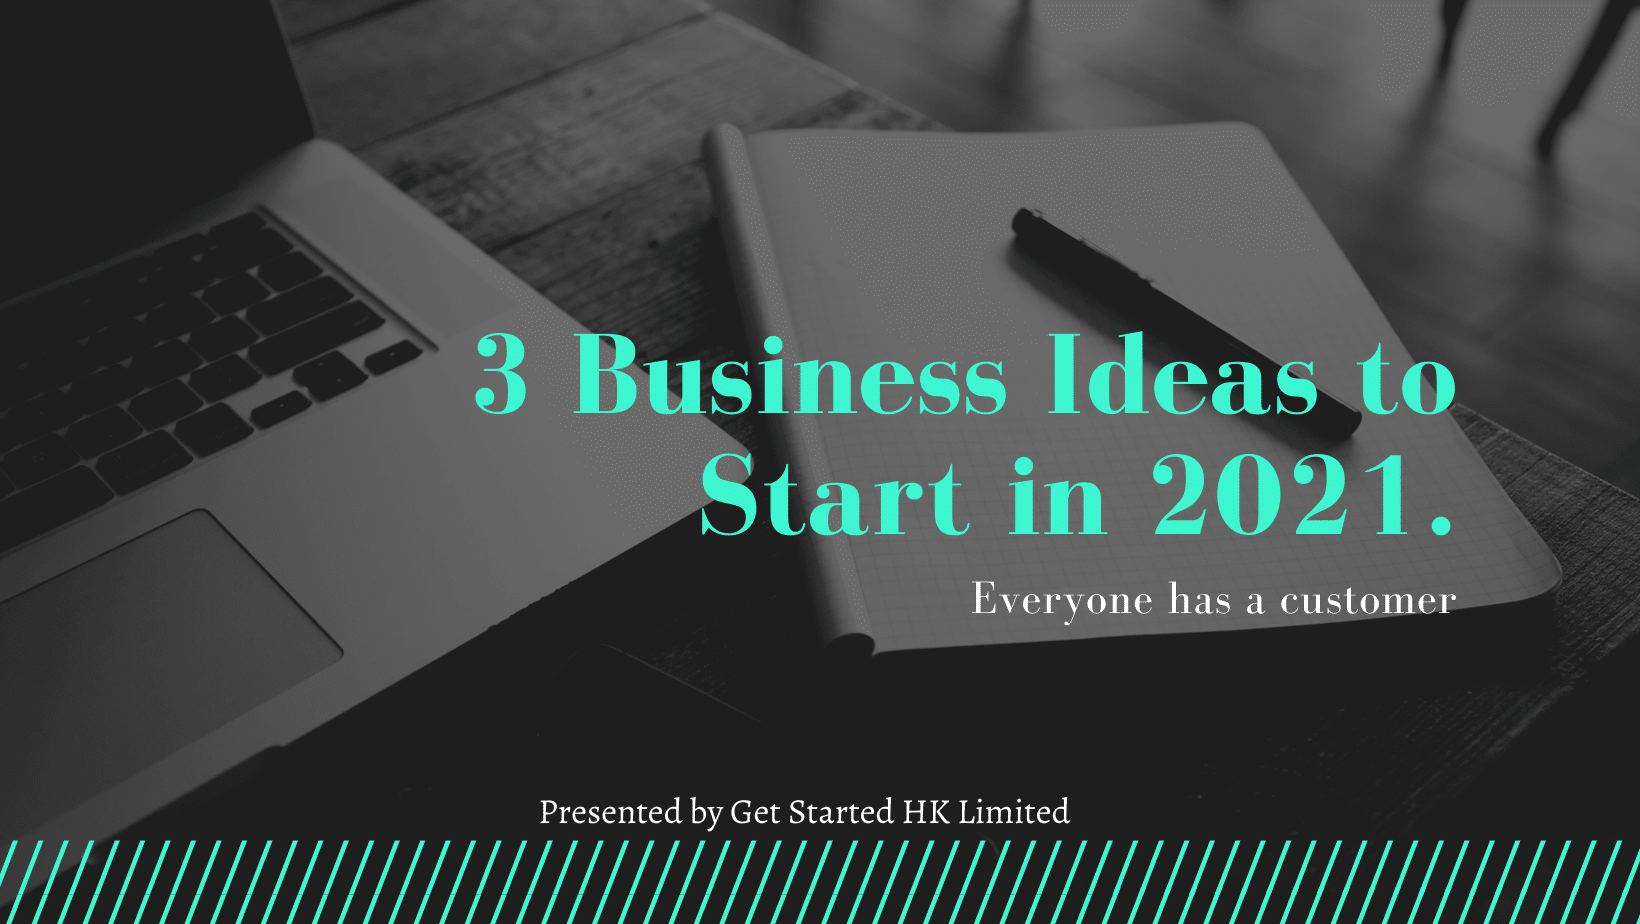 3 business ideas to start in 2021